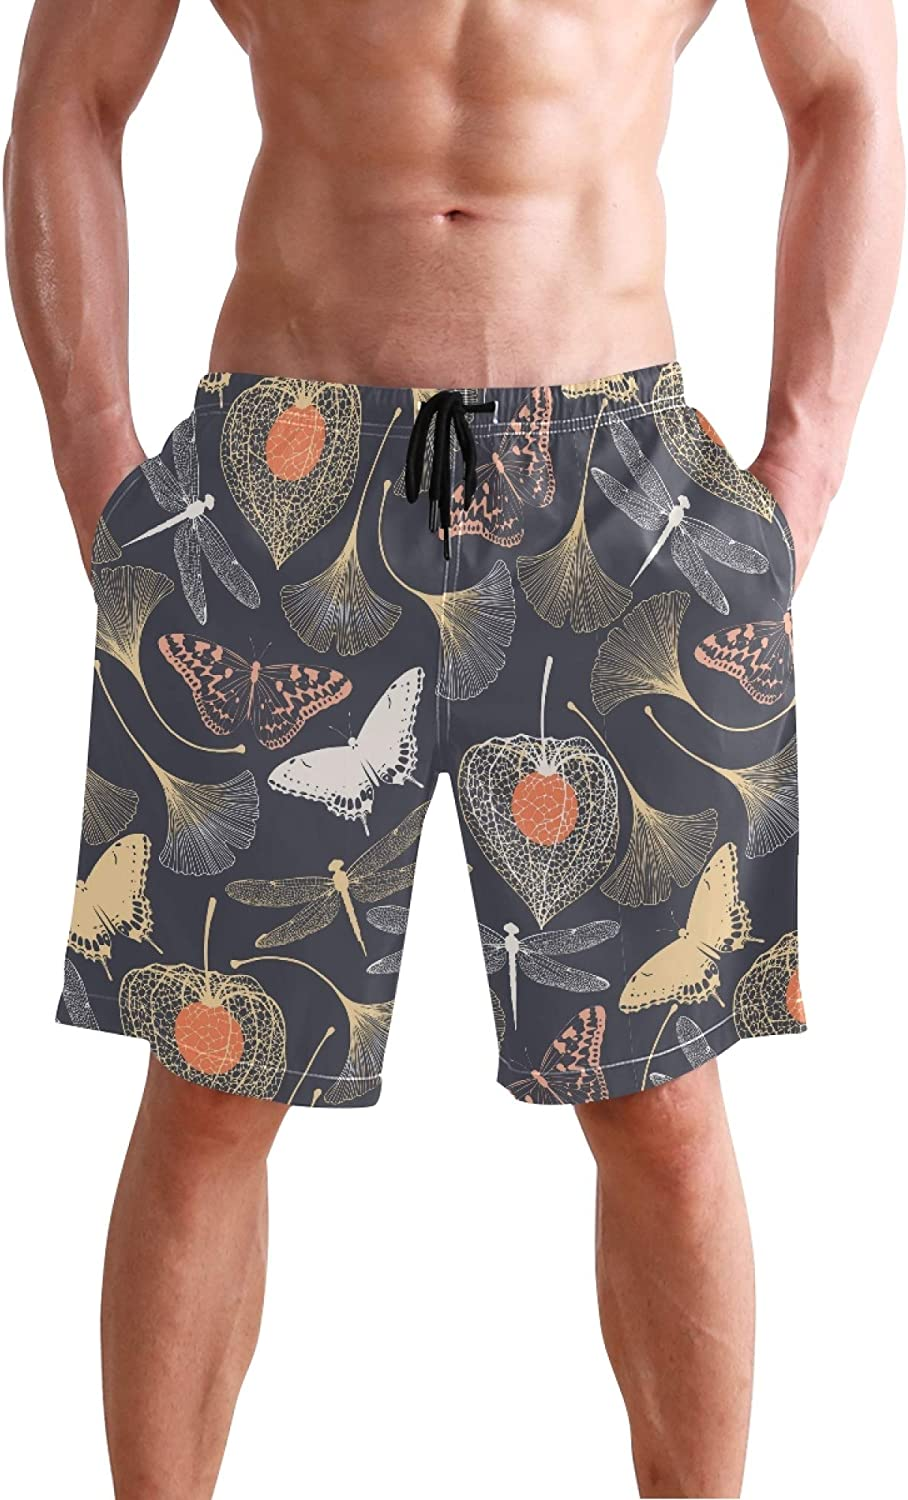 Butterfly Insect Mens Swim Trunks Men's Sportwear Quick Dry Board Shorts with Mesh Linin S 20402732